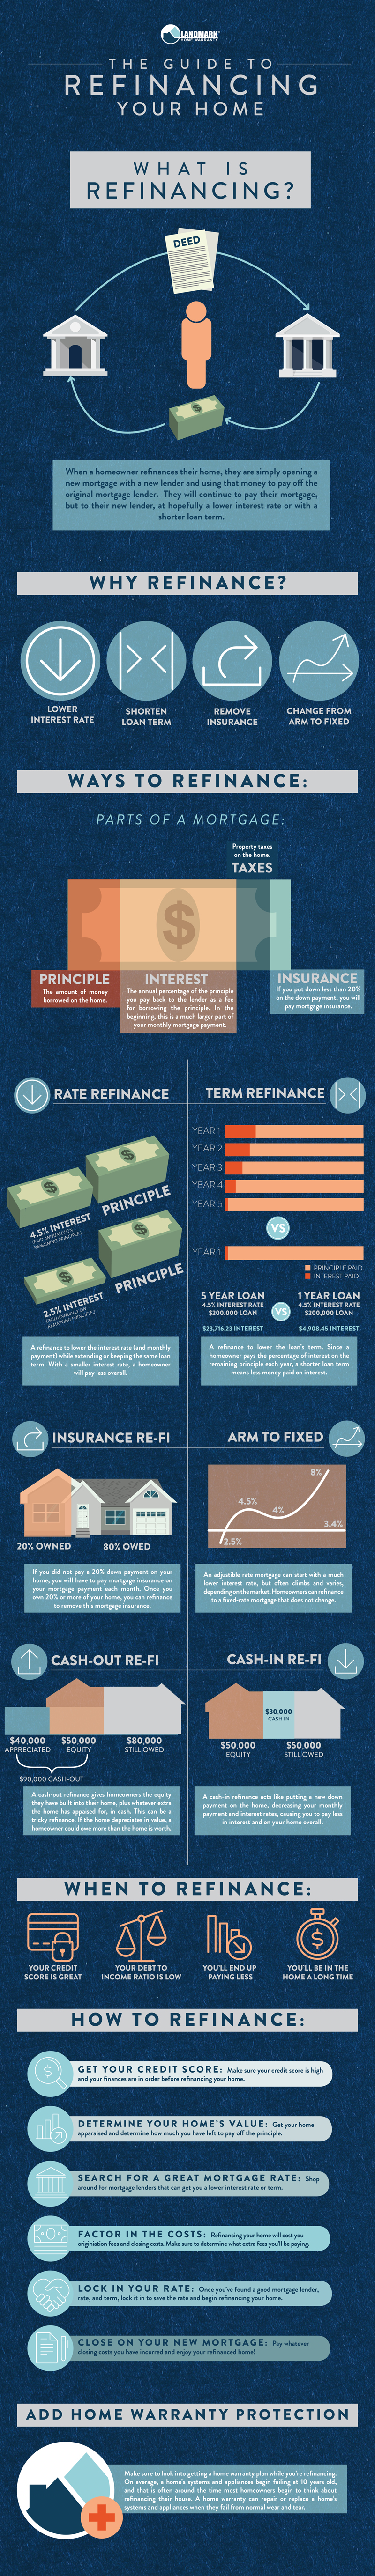 The full infographic of how to refinance your home.